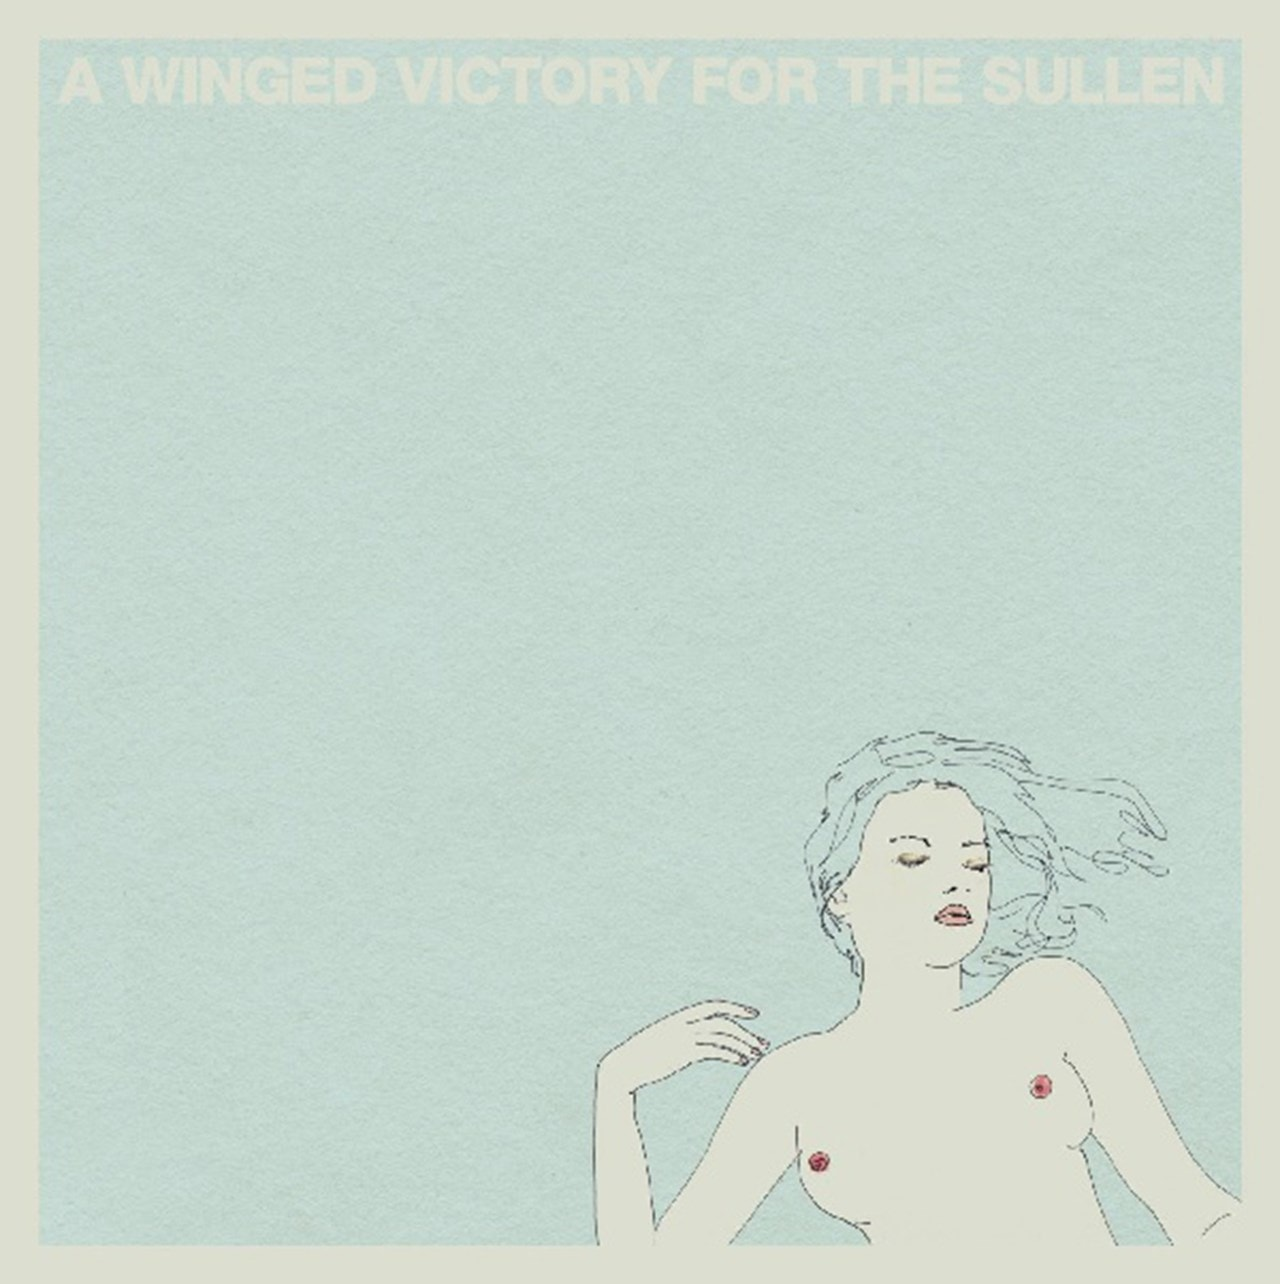 A Winged Victory for the Sullen - 1